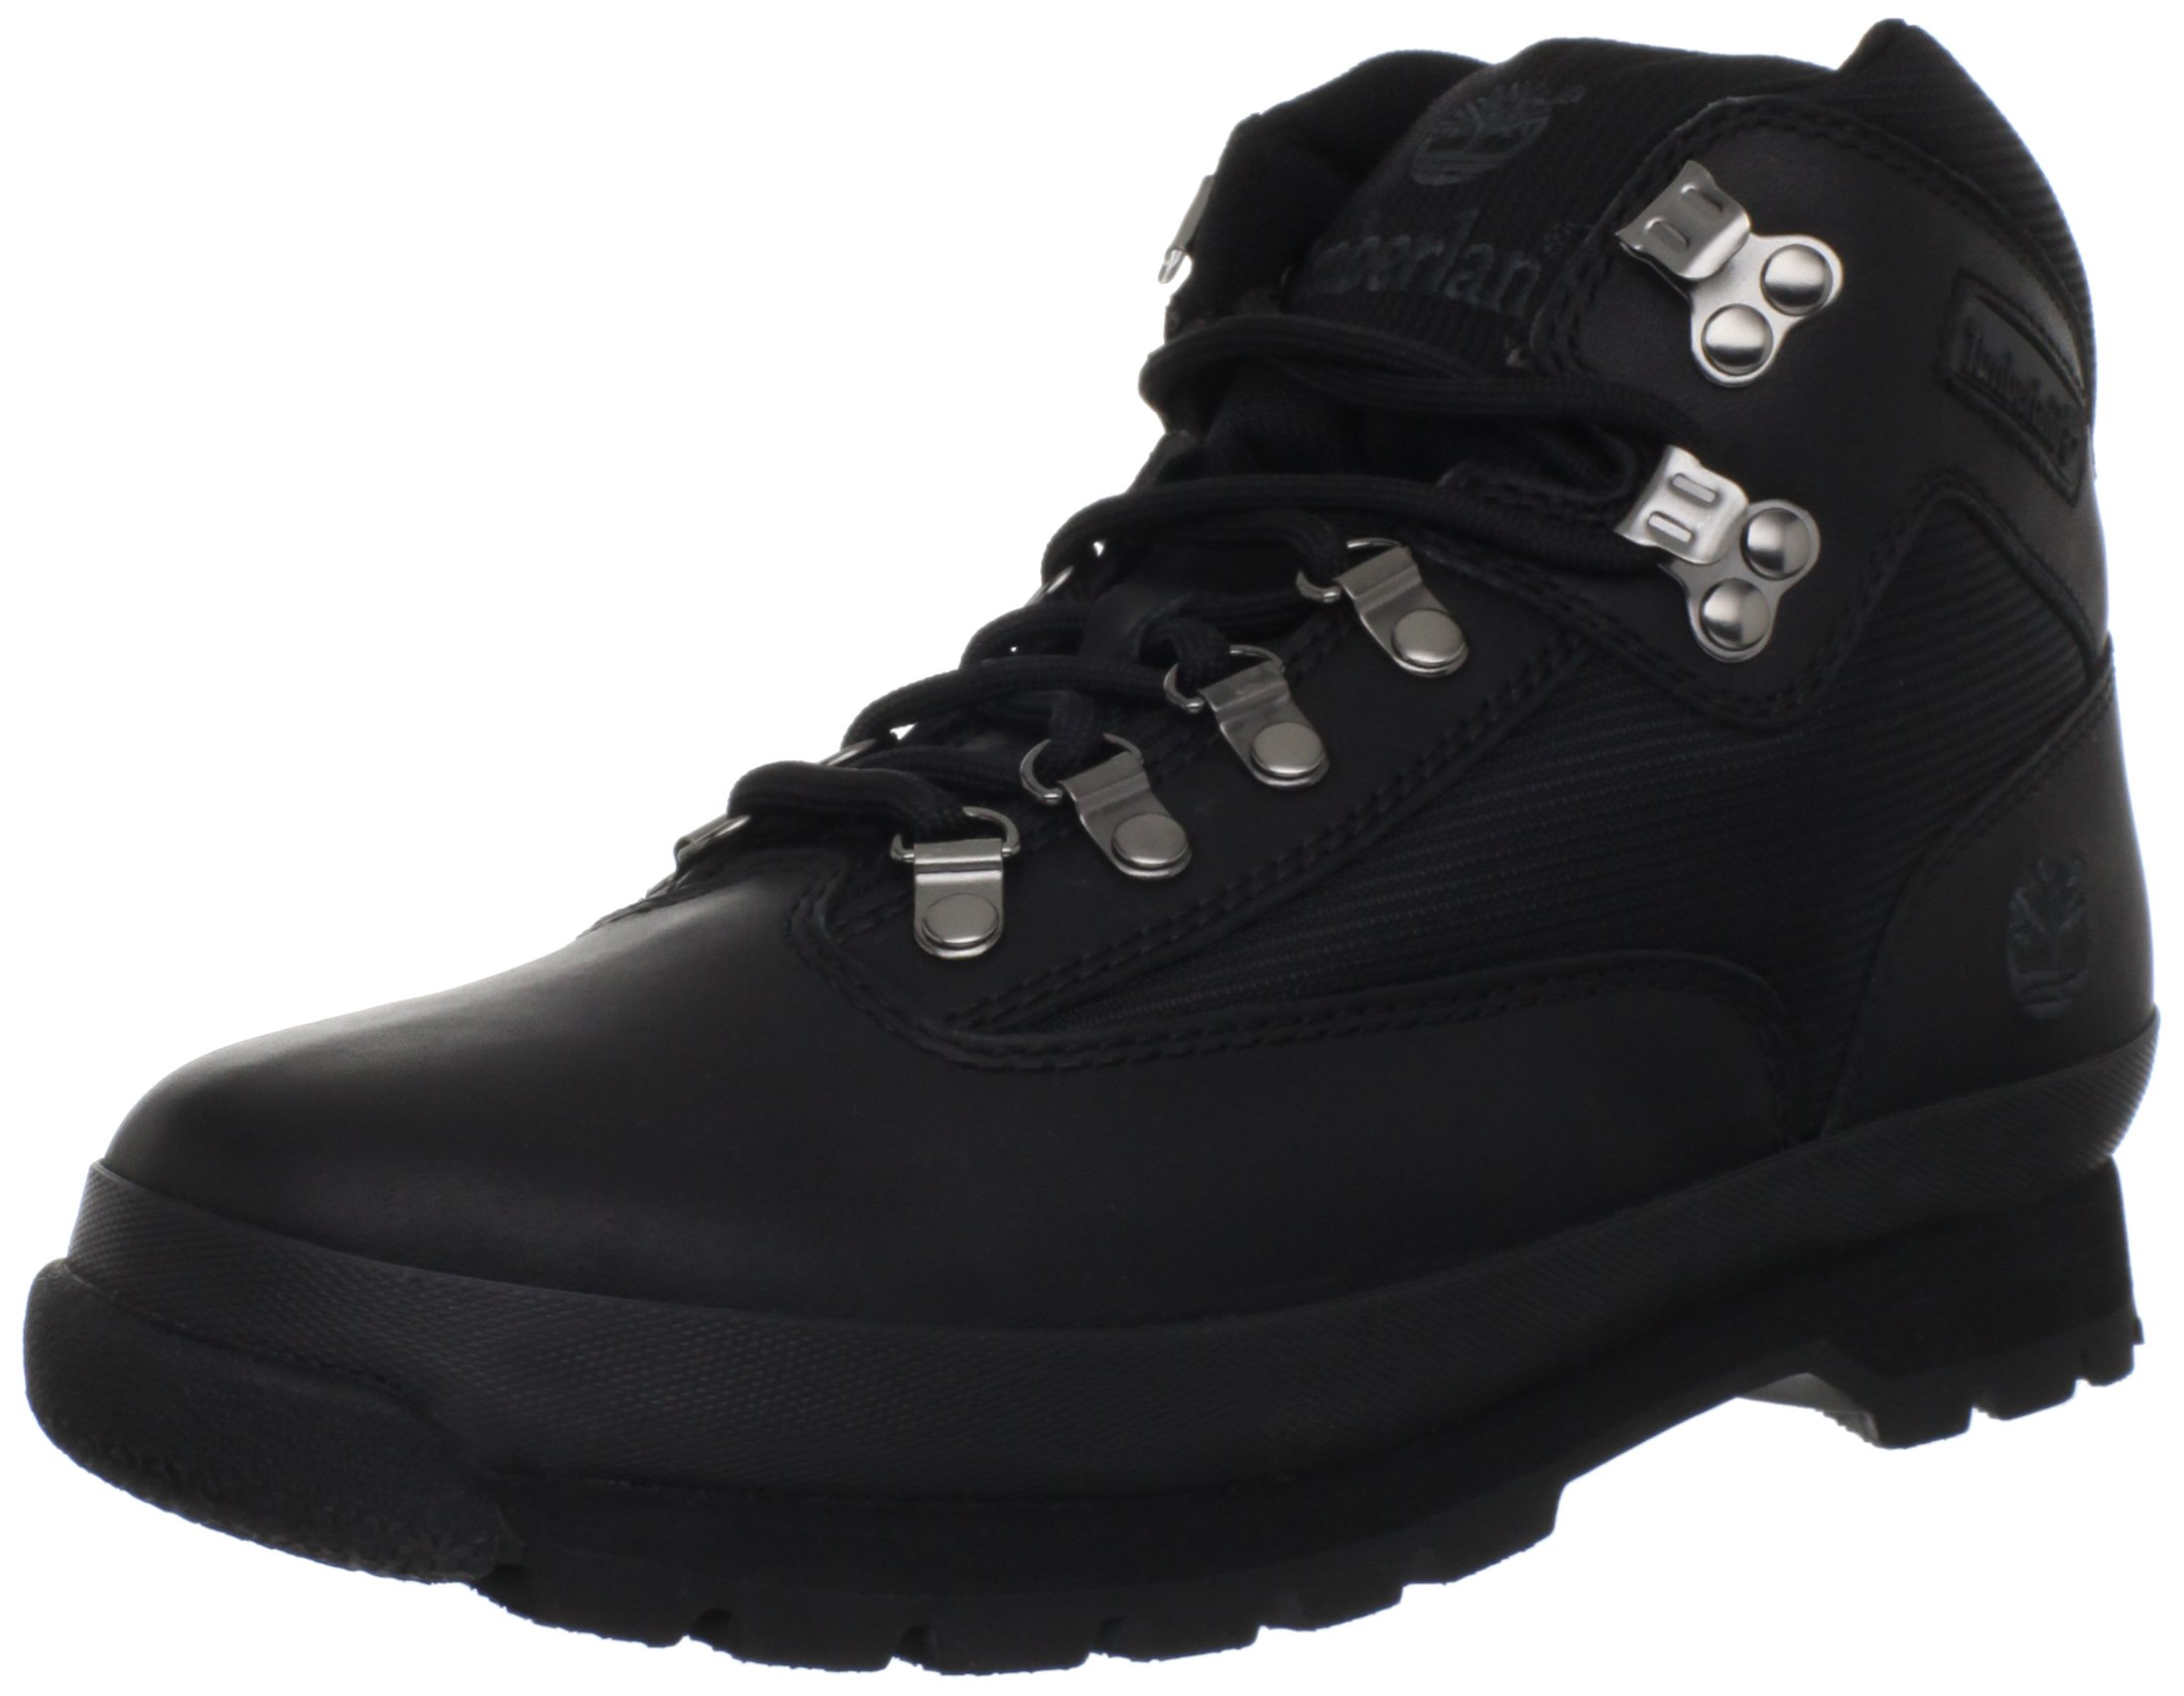 Timberland Men's Euro Boot,Black Smooth,10.5 M US by Timberland (Image #1)